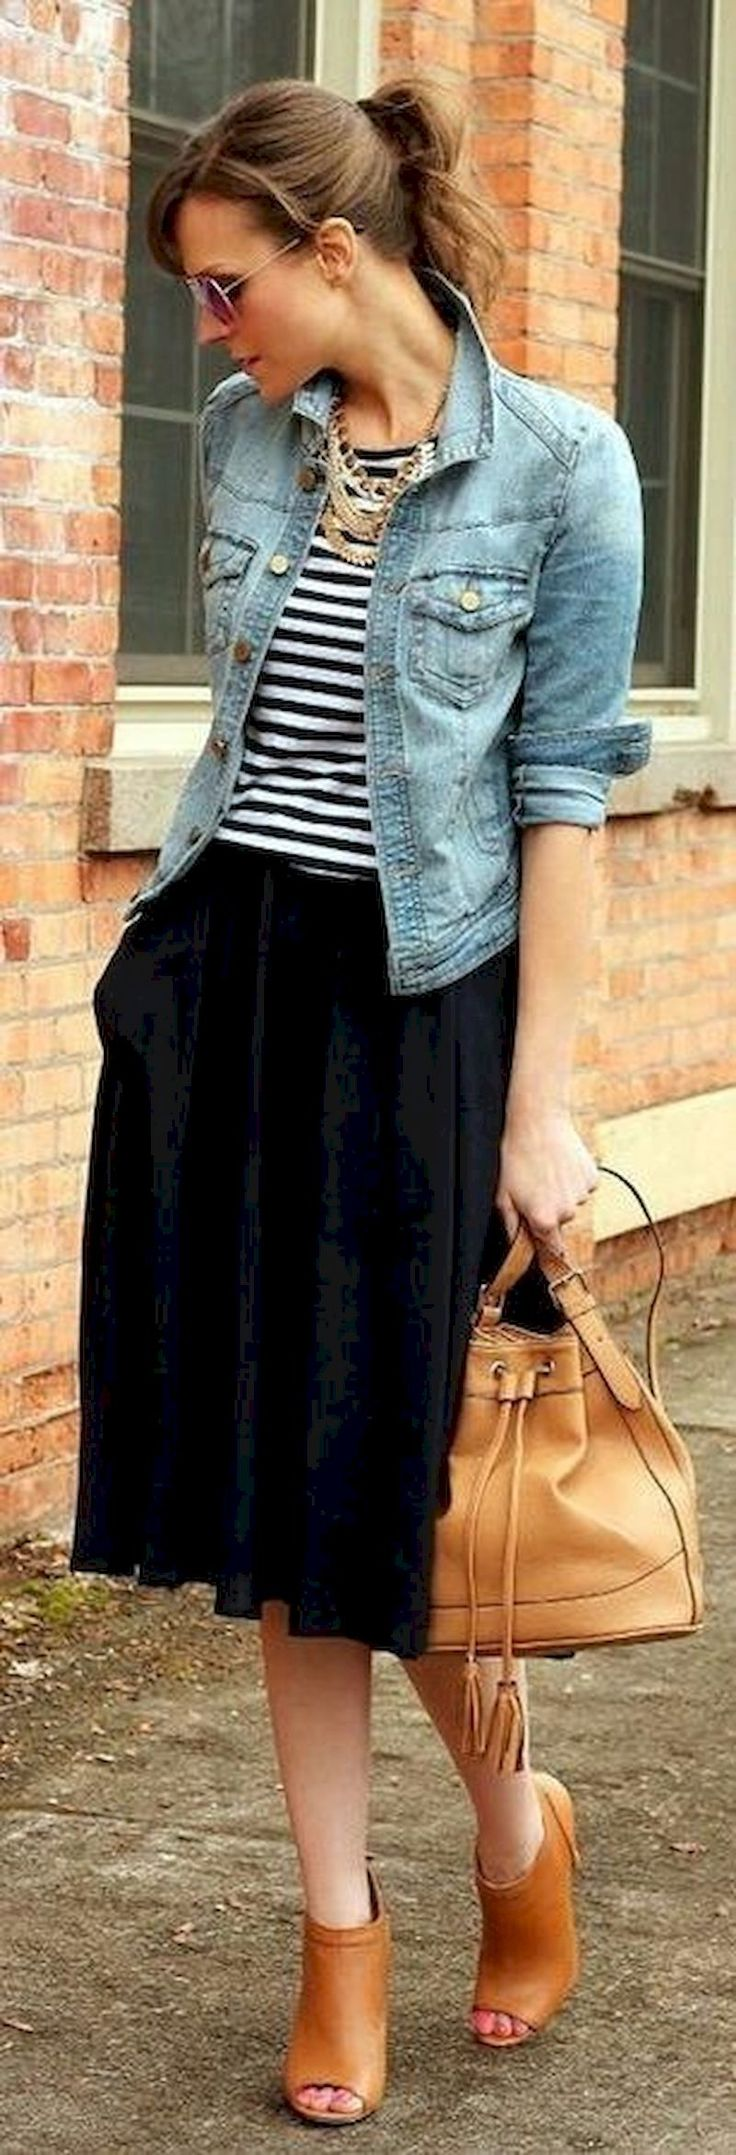 44 Top Trending Outfits for Summer Street Style